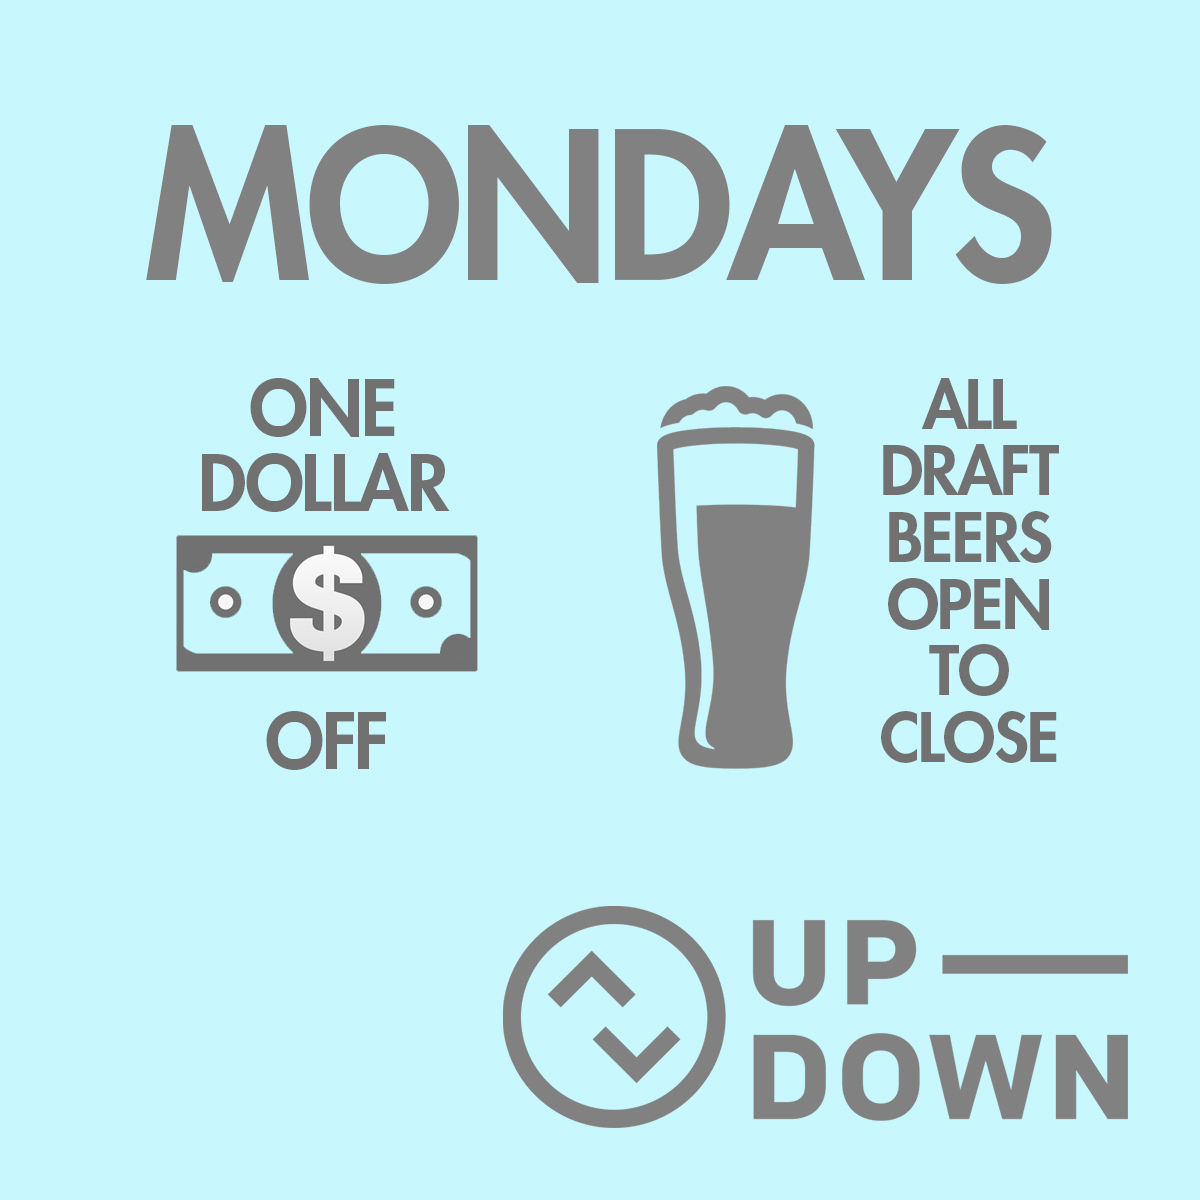 Up Down monday specials